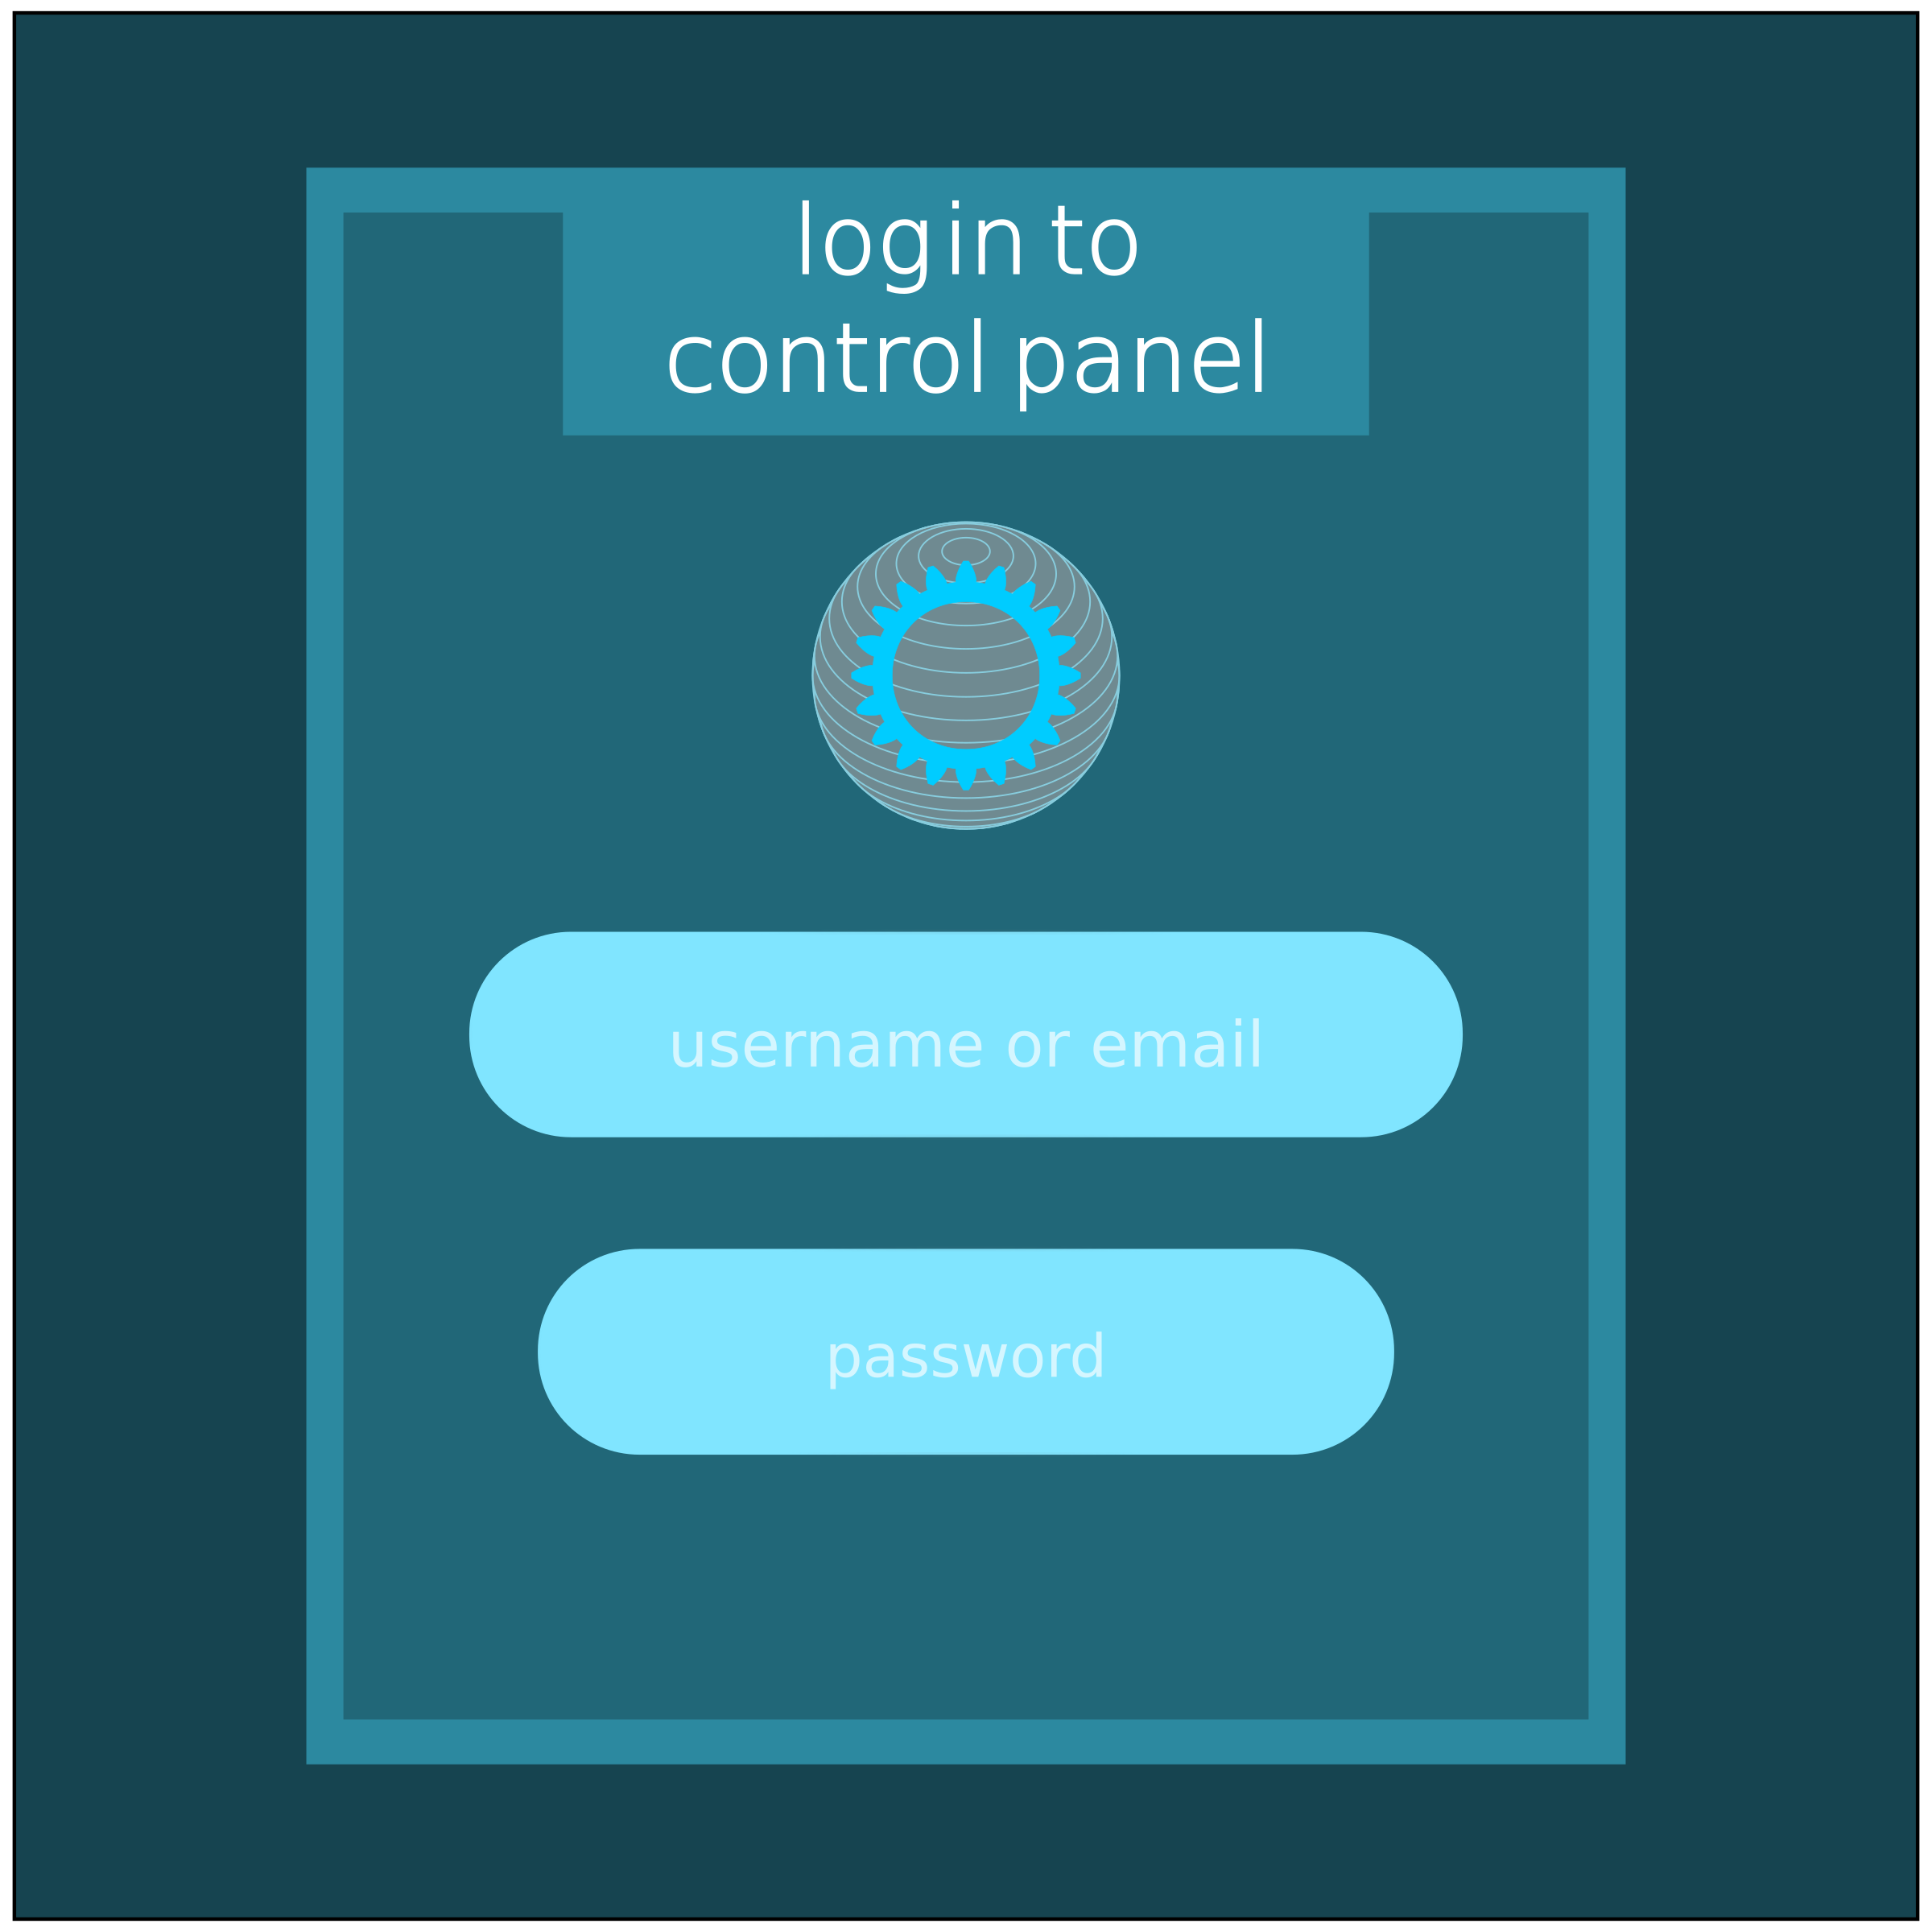 log in to control panel  by QMC.media